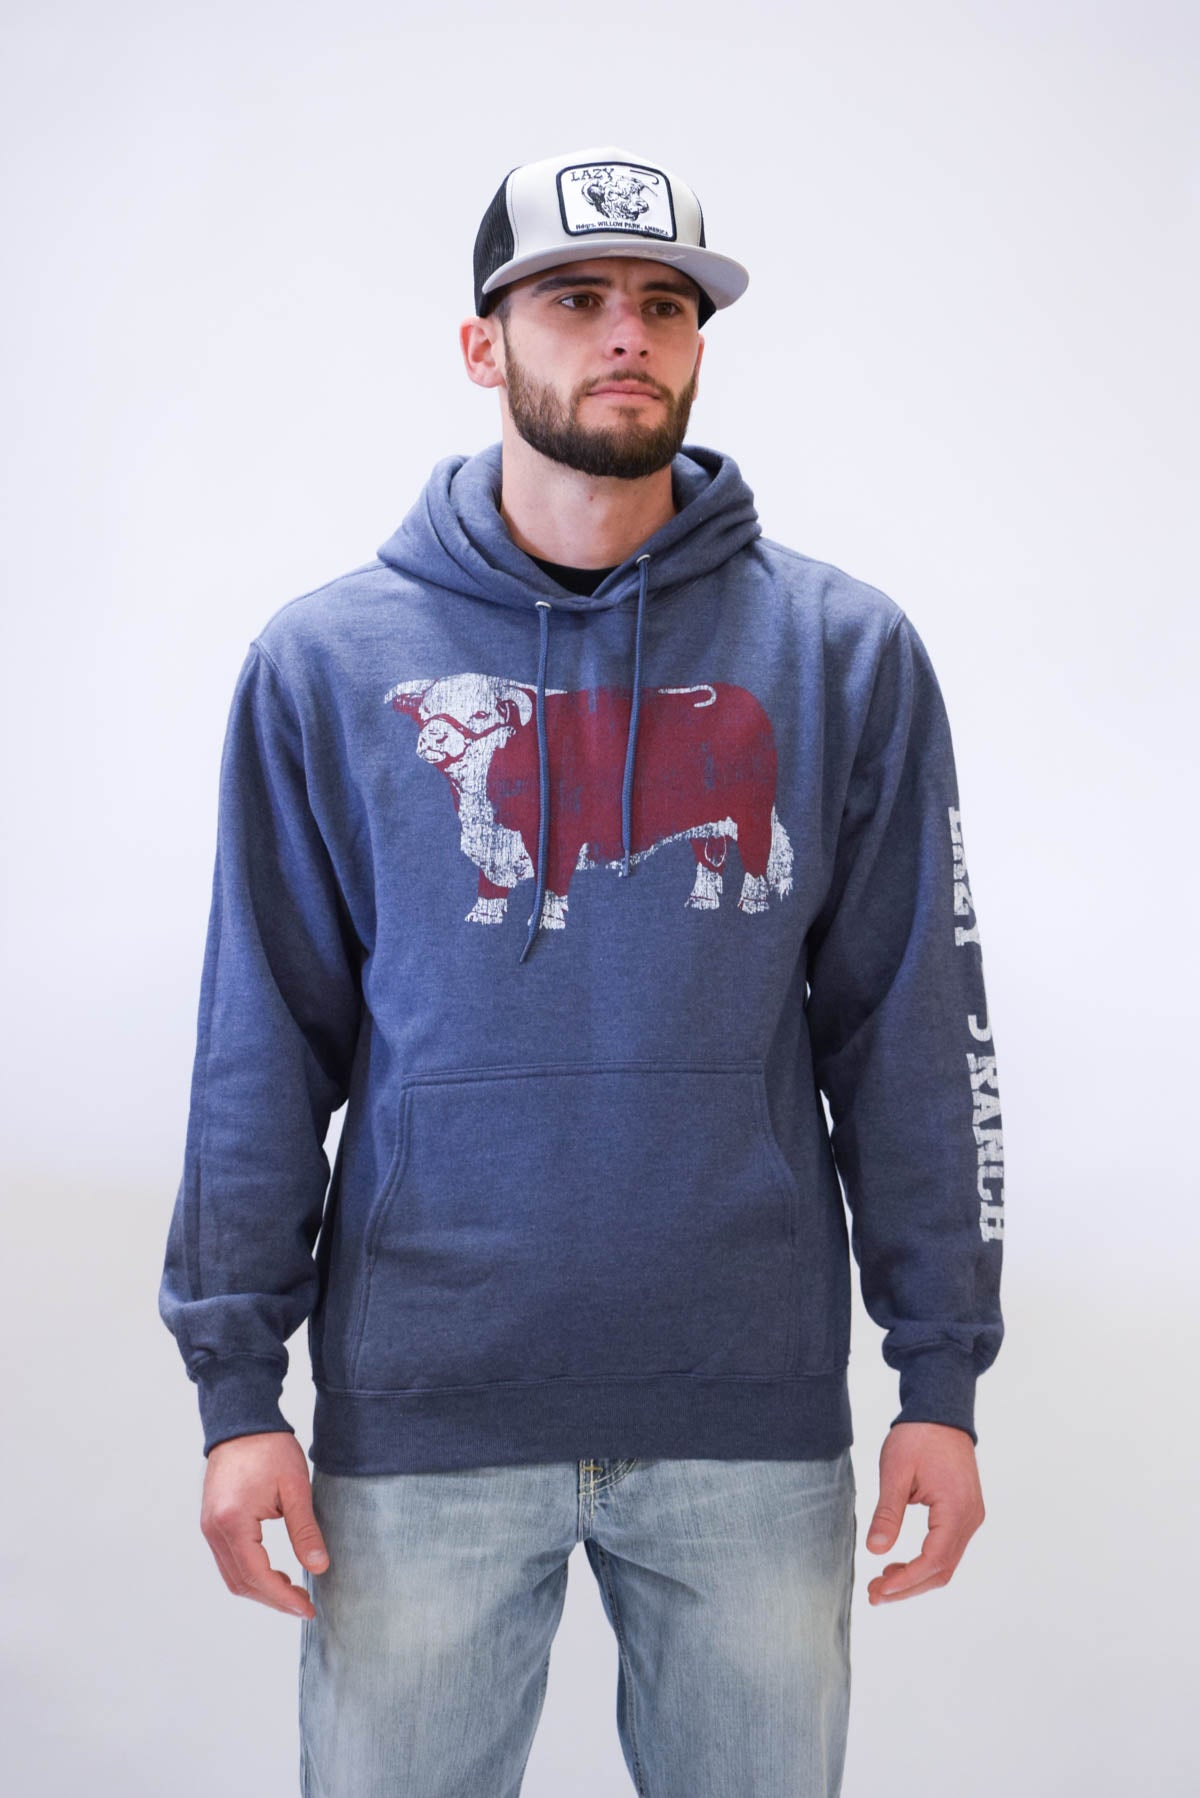 Lazy J Original Hereford Maroon Jughead Navy Hoodie